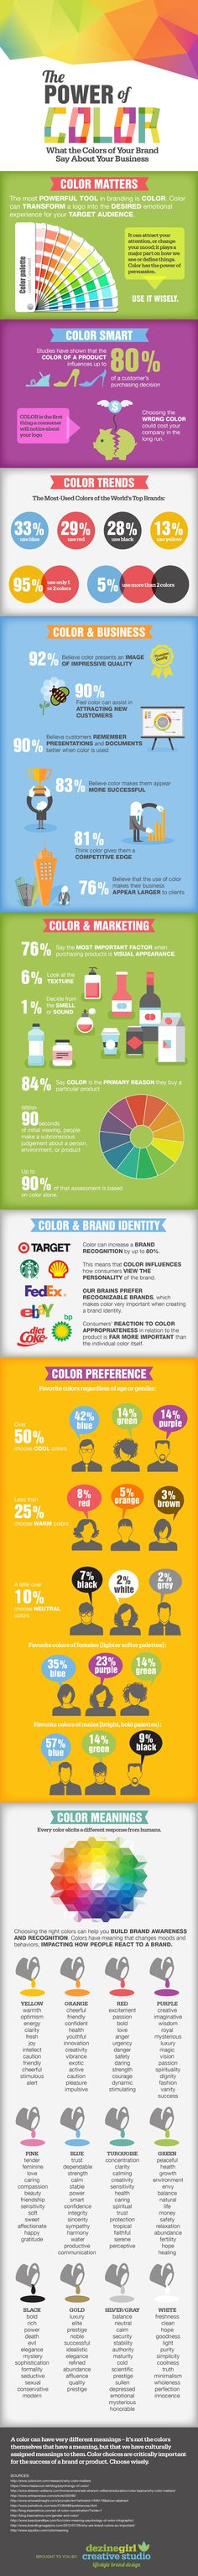 Color Matters. Churches need to think about what the colors they use on their website say to their desired audience